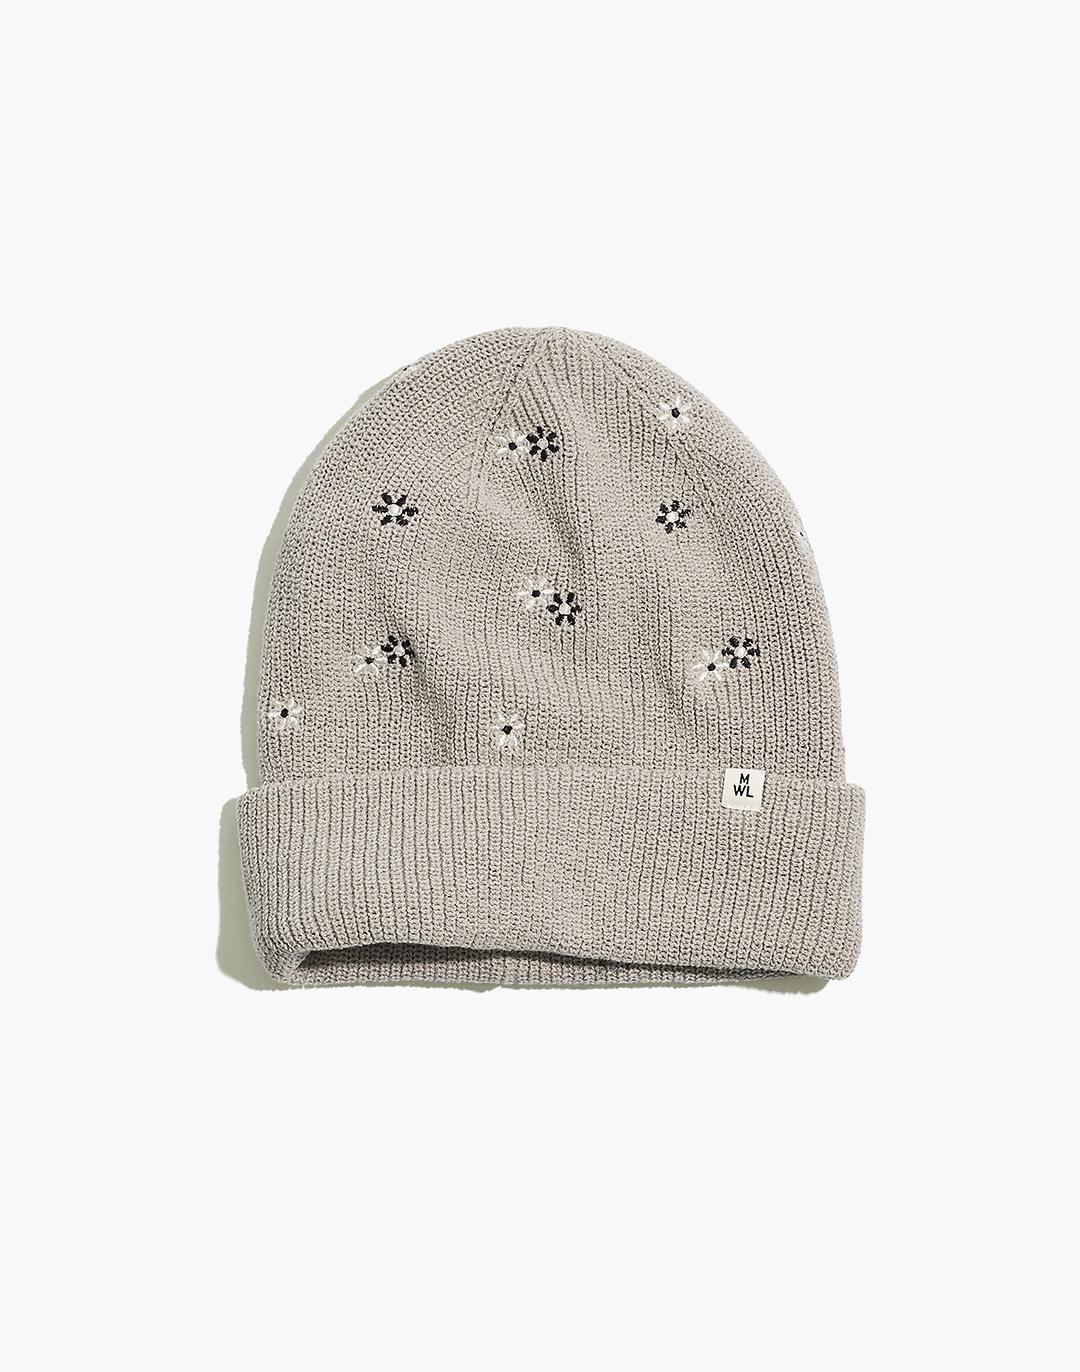 Daisy Embroidered Re(sourced) Cotton MWL Cuffed Beanie